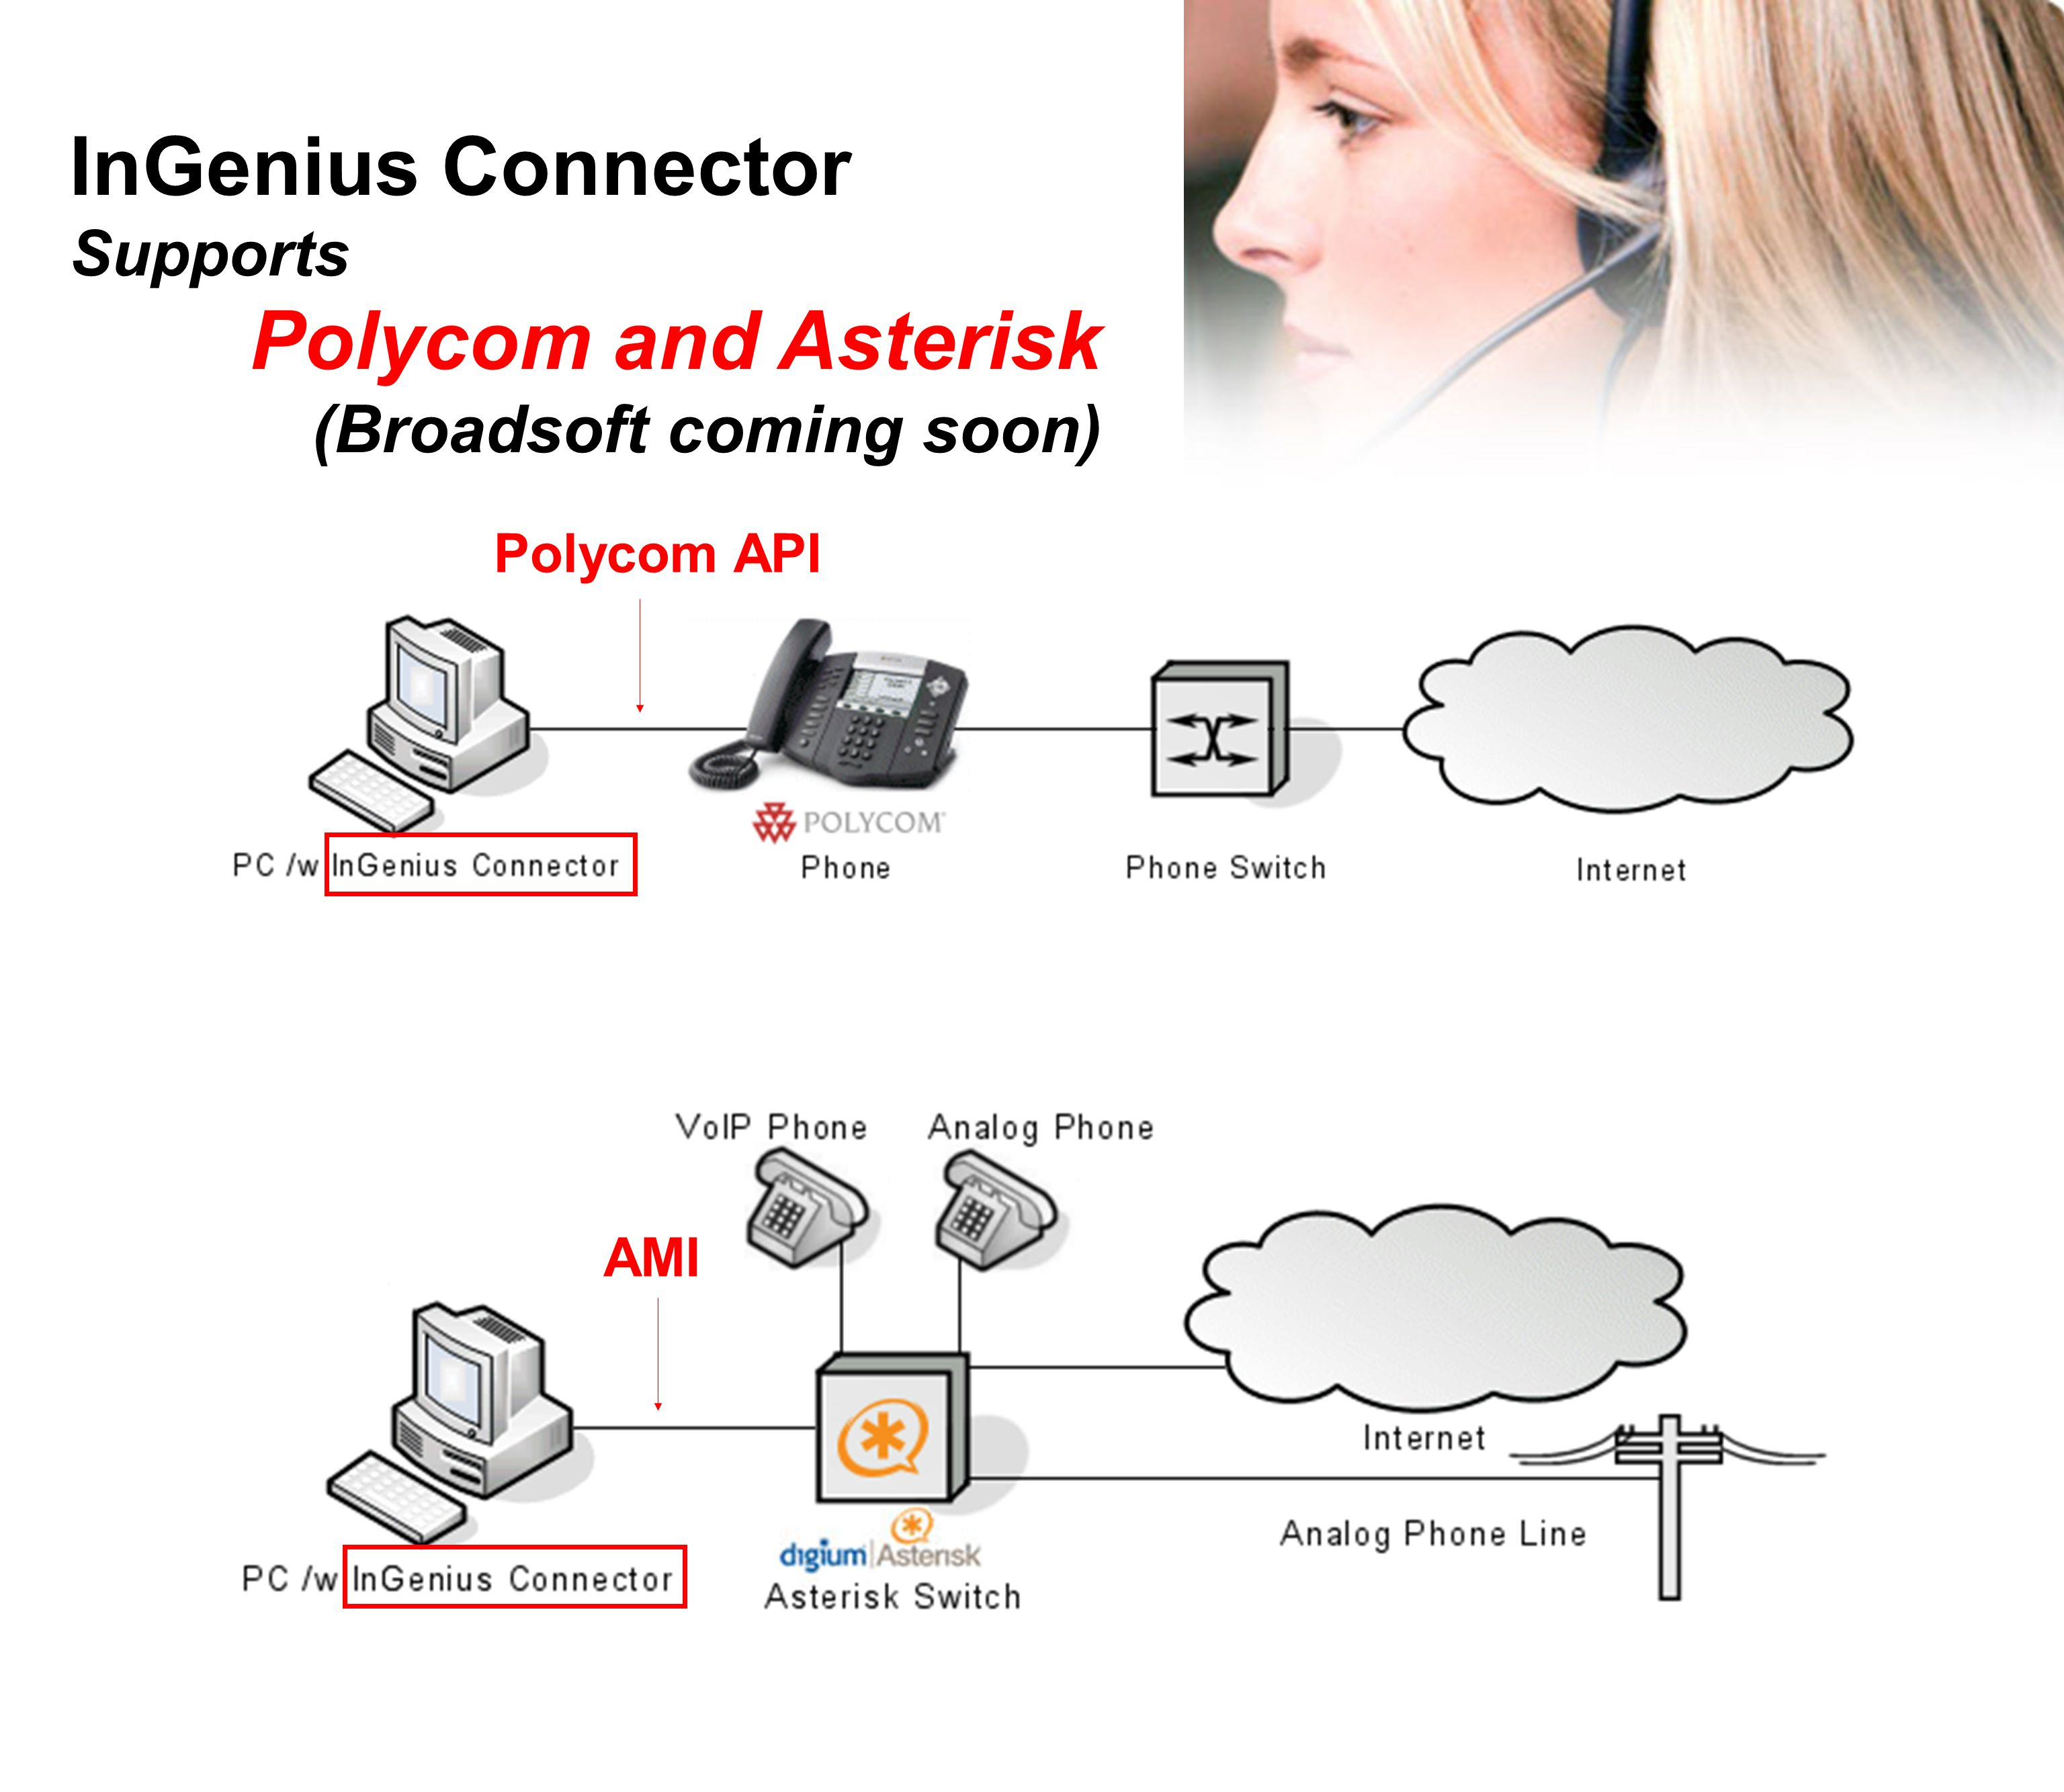 InGenius Connector Supports Polycom and Asterisk (Broadsoft coming soon) Polycom API AMI